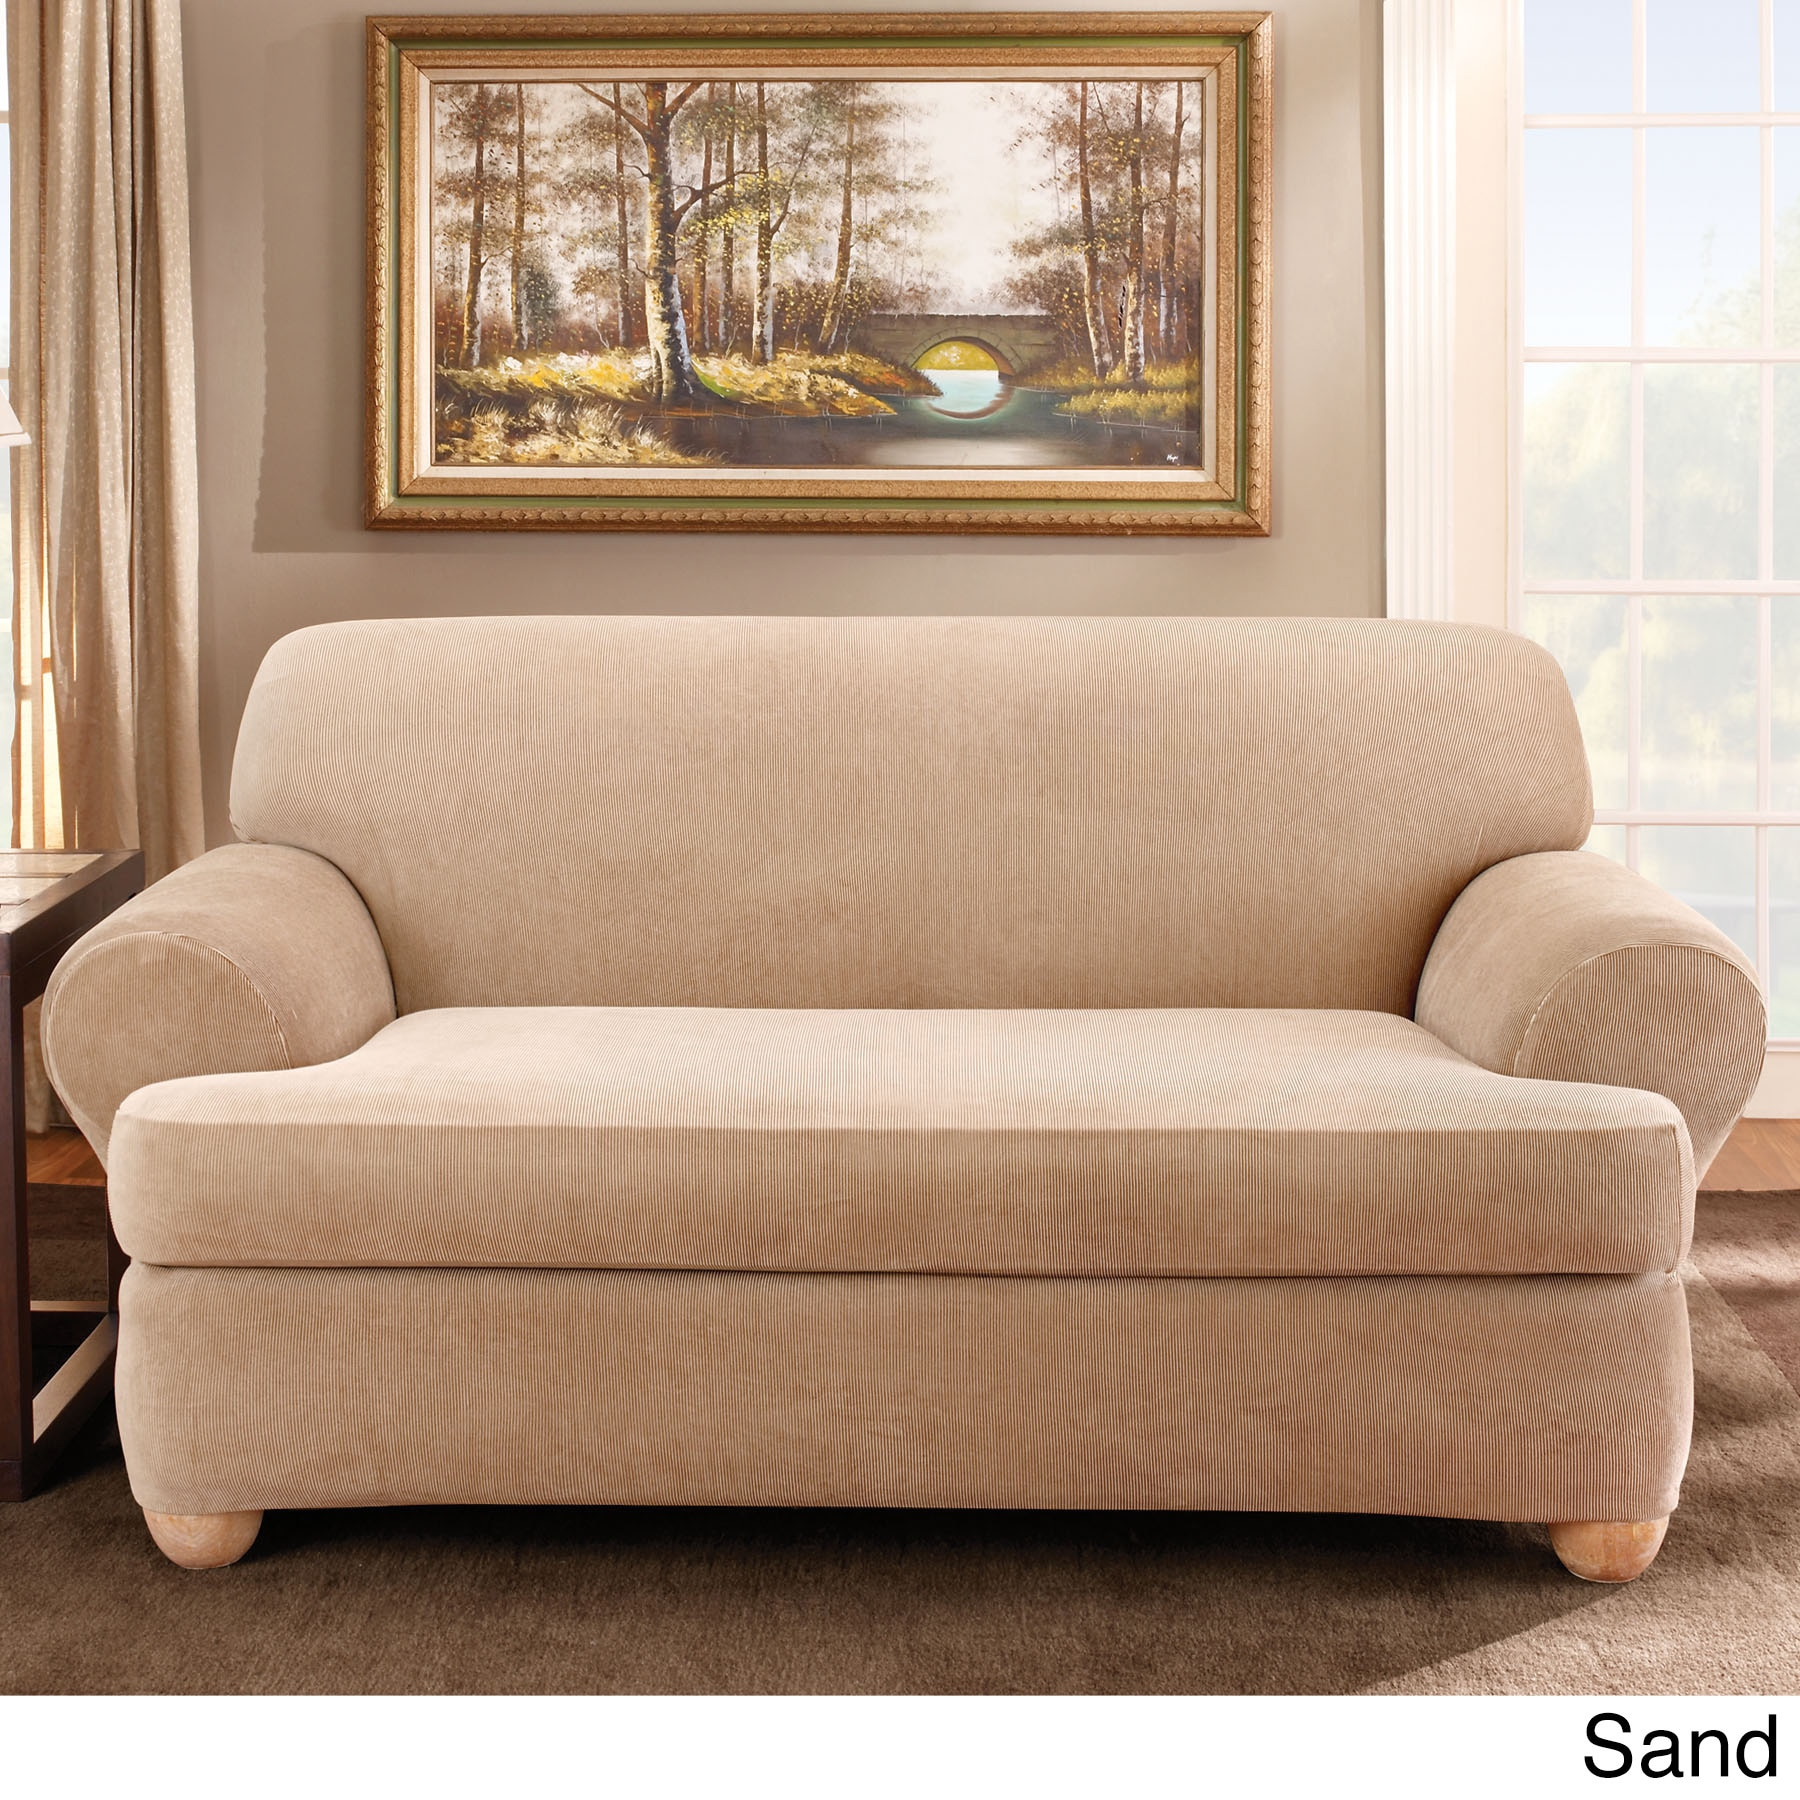 Slipcovers for Sofas with Cushions Separate | Dining Chair Slipcover | Slipcovers for Sectionals